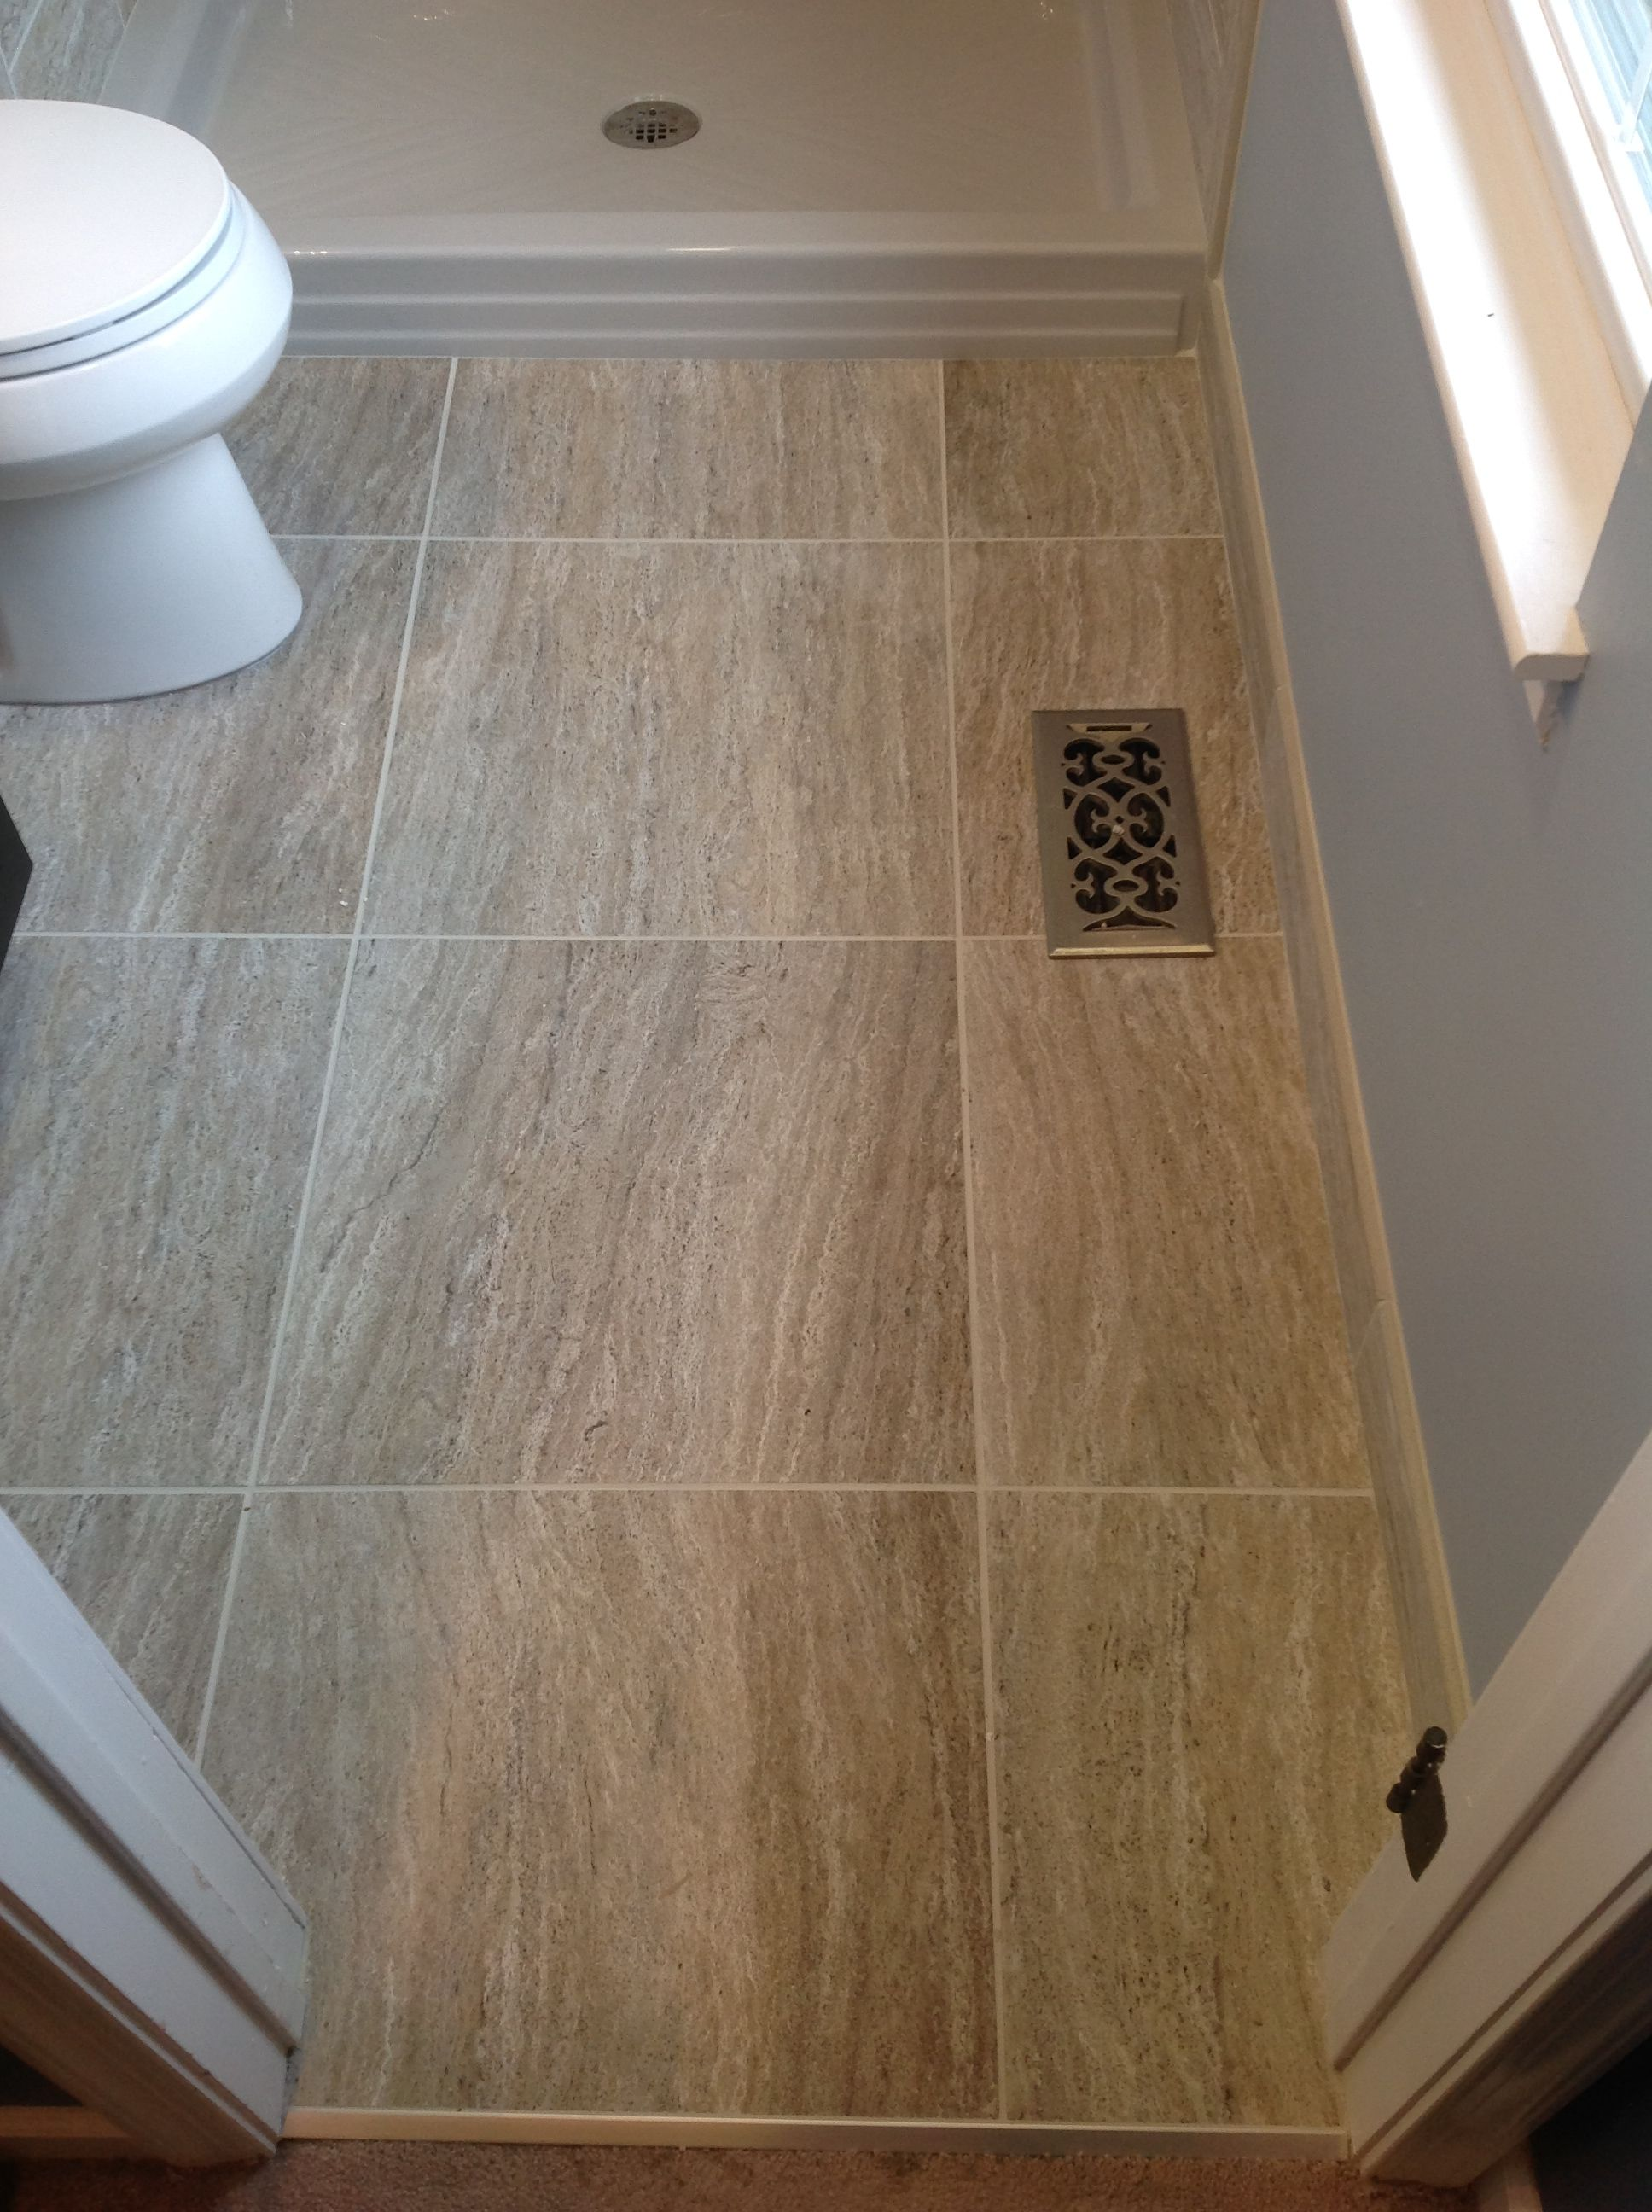 Marazzi Silk Elegant 20x20 Floor Tiles In A 5 X 6 E Large Format Work Nicely Small Bathroom